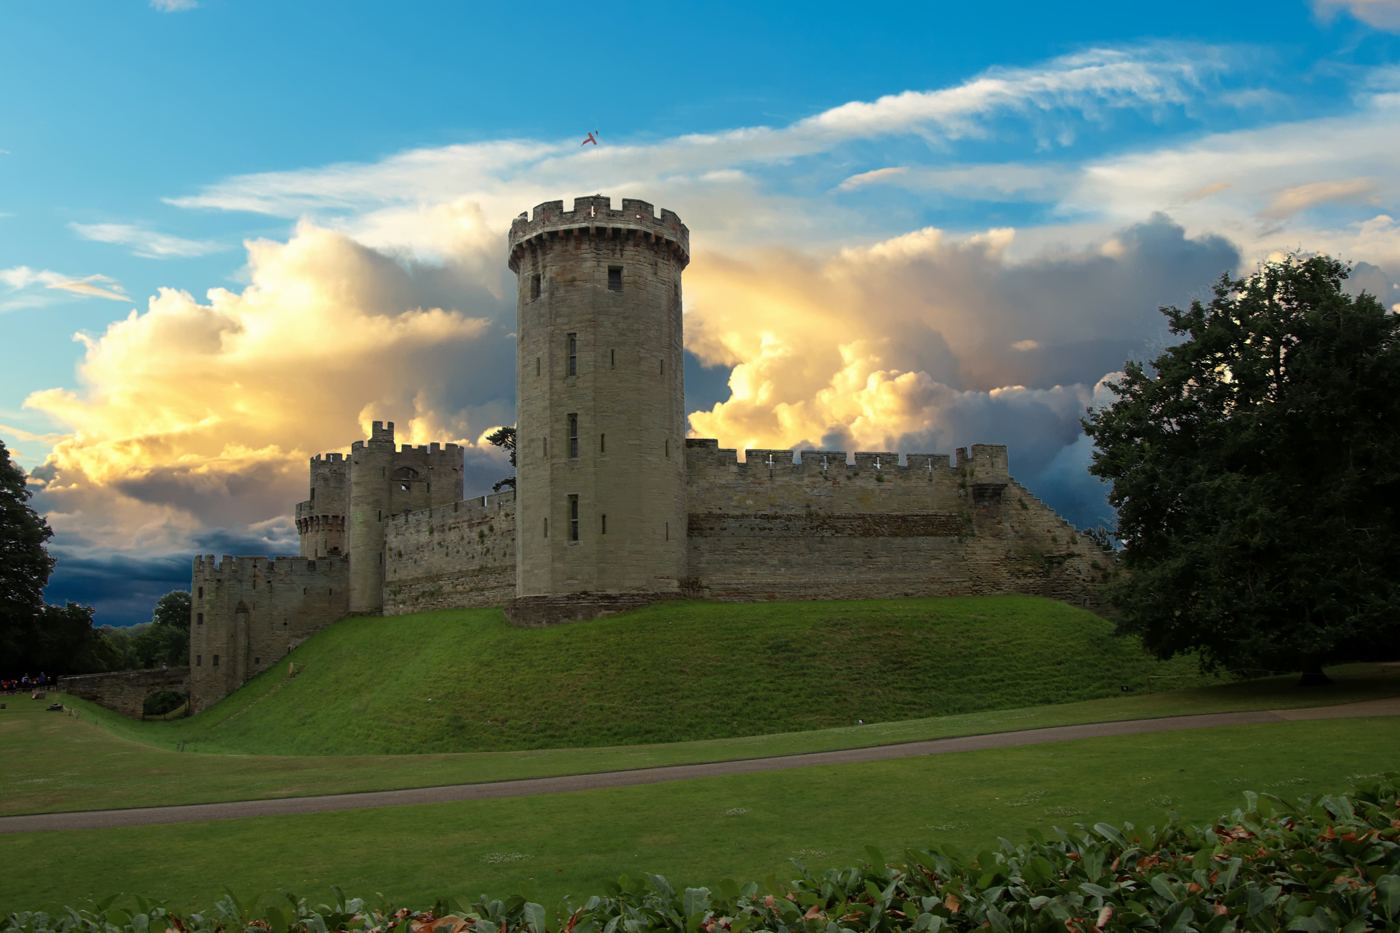 Warwick castle with thick clouds in the distance at sunset